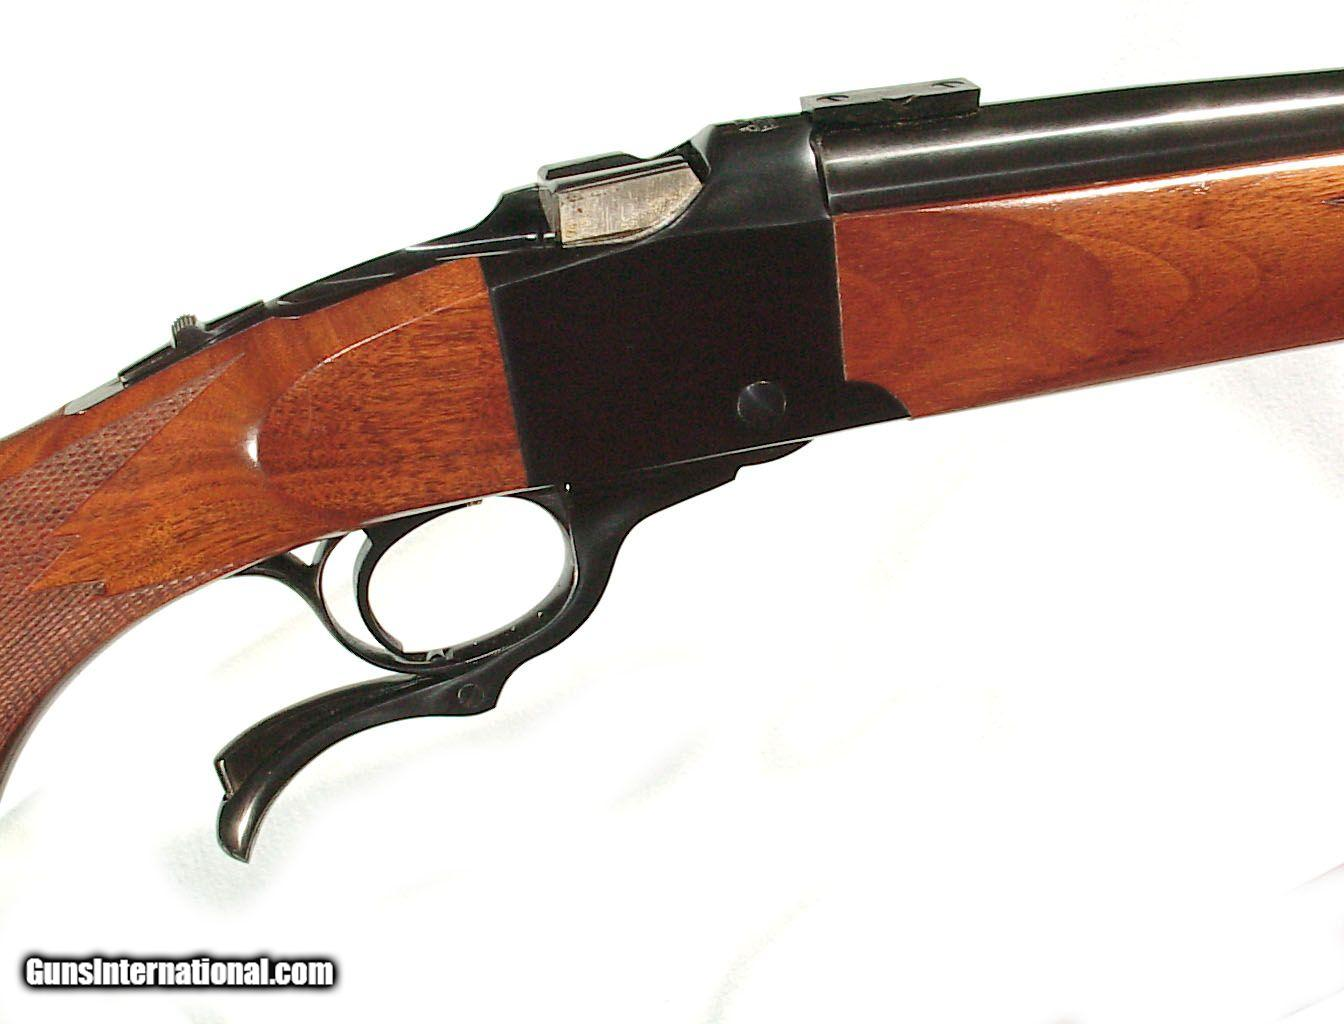 Manufacture dates ruger M77 rifle